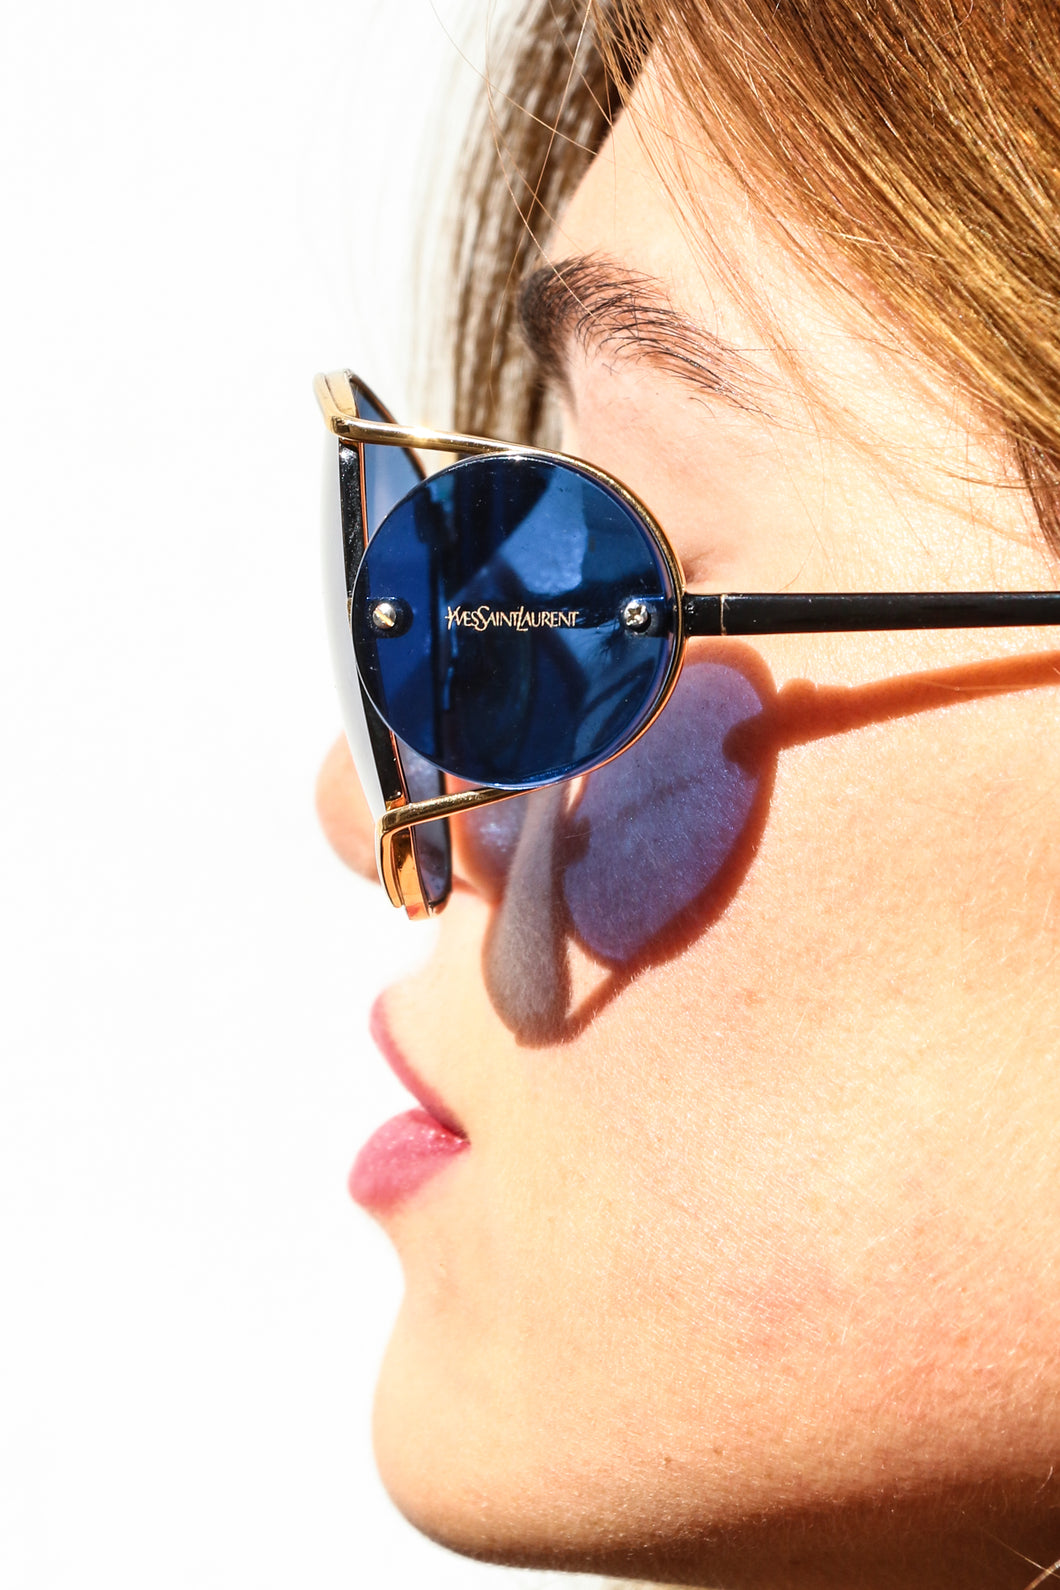 1970 Yves Saint Laurent Sunglasses